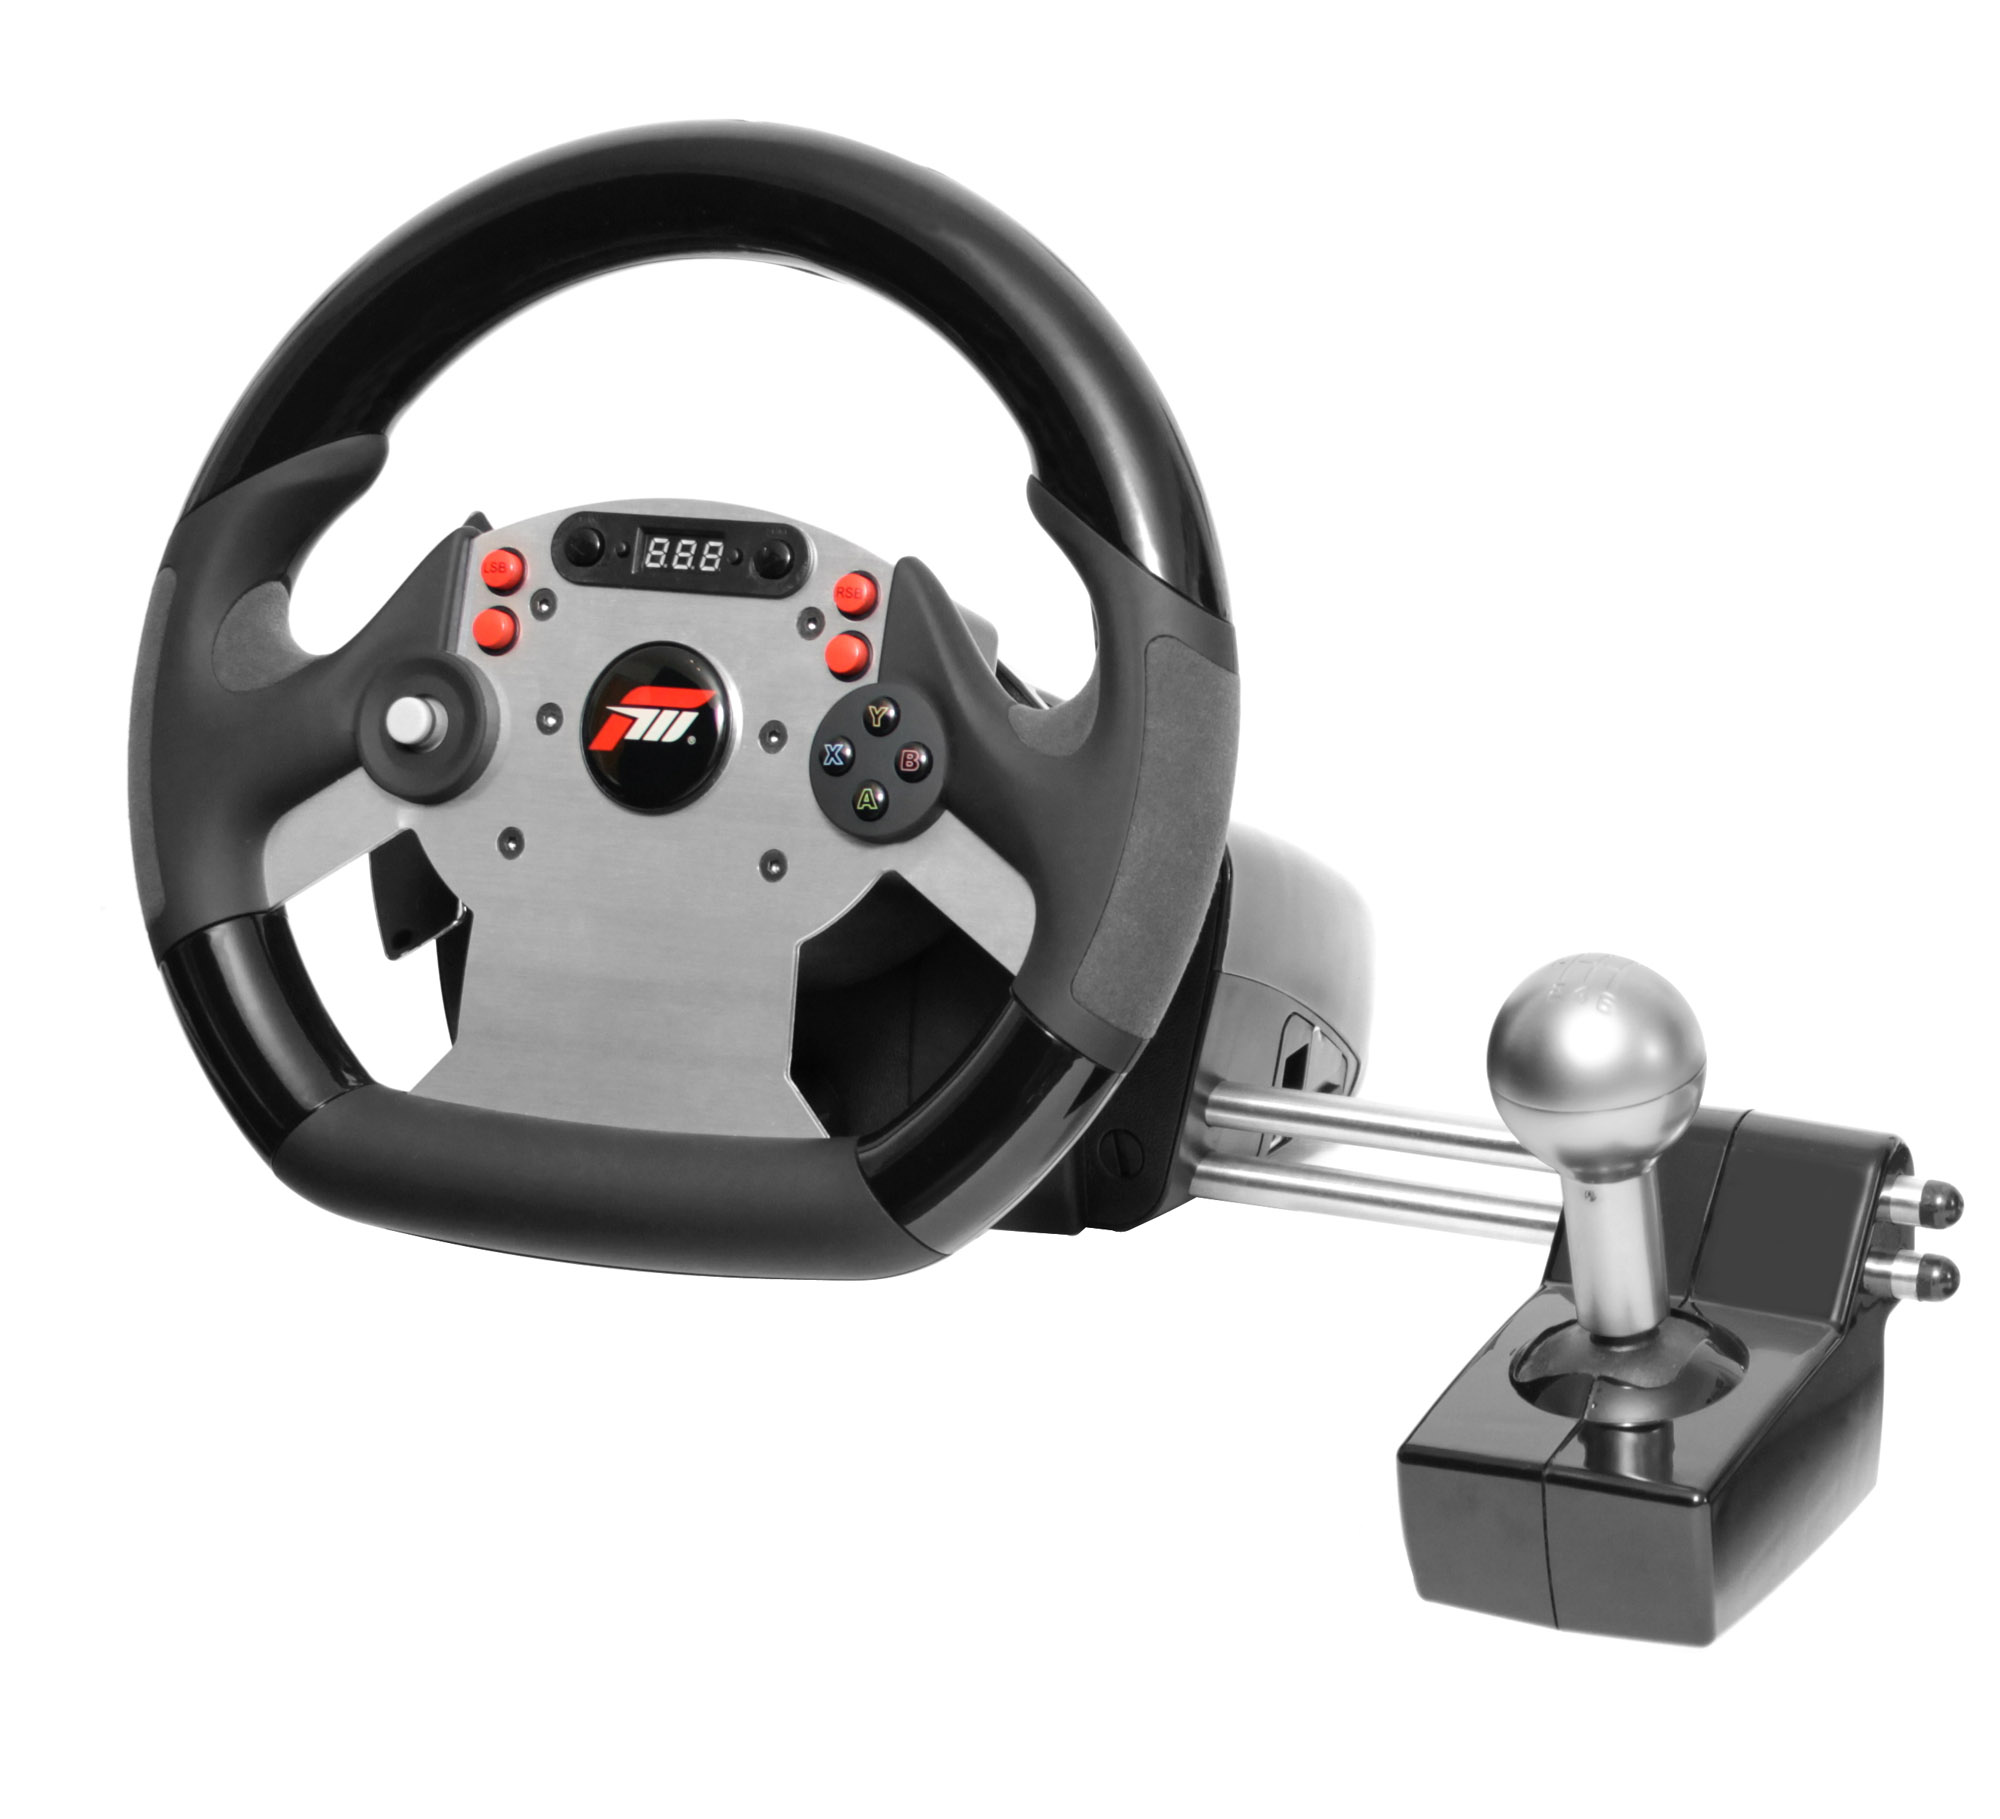 fabulous porsche 911 gt2 wheel fanatec noisiestpassenger. Black Bedroom Furniture Sets. Home Design Ideas